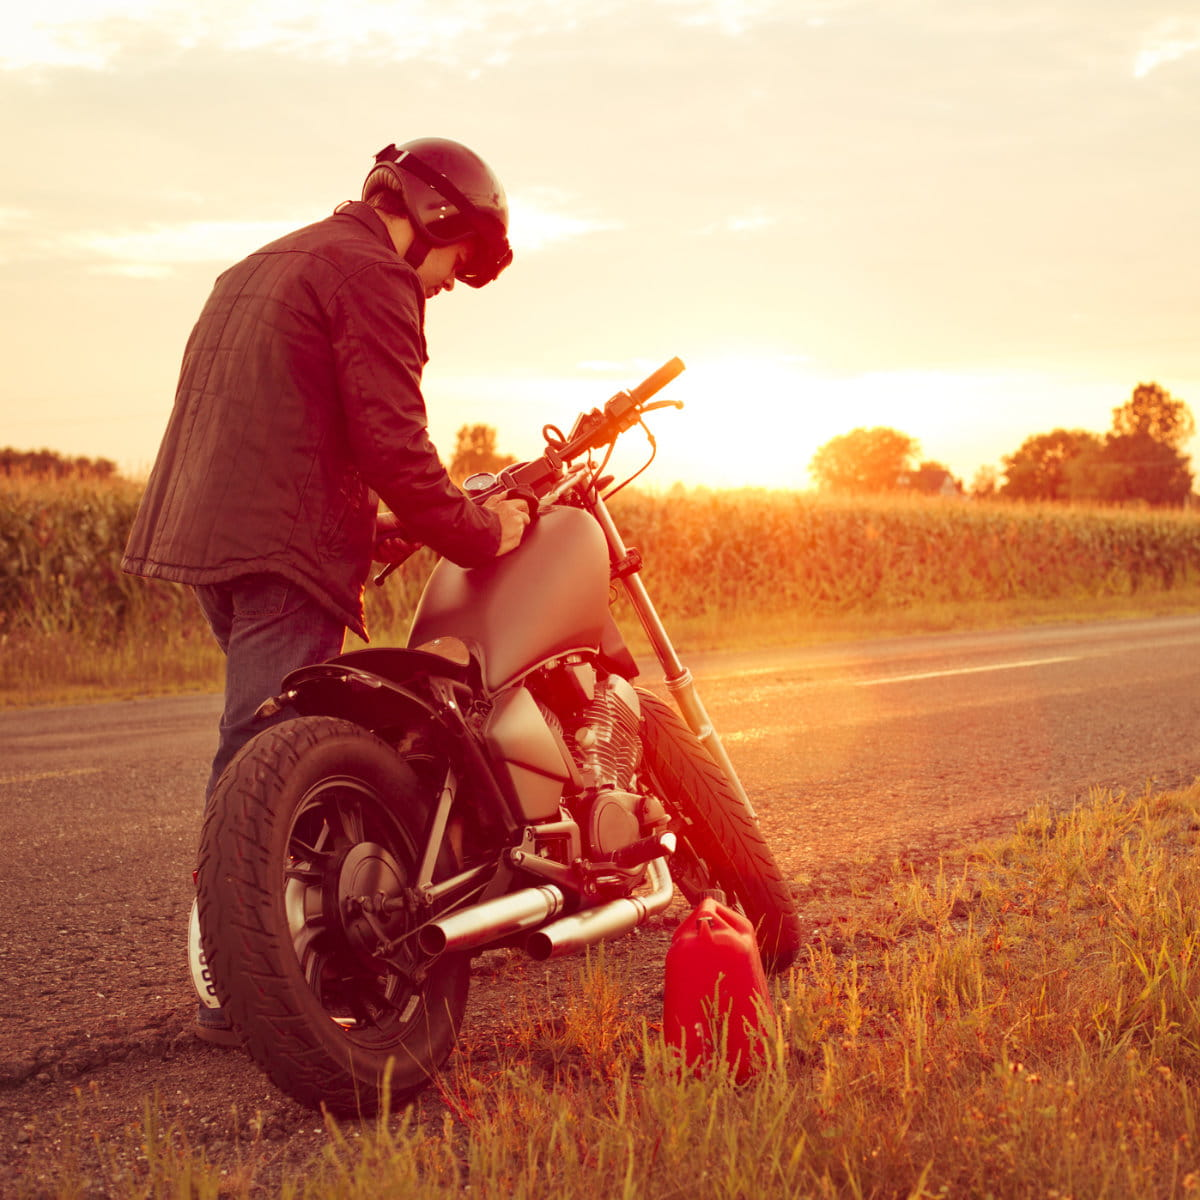 Man next to a motorcycle out of gas